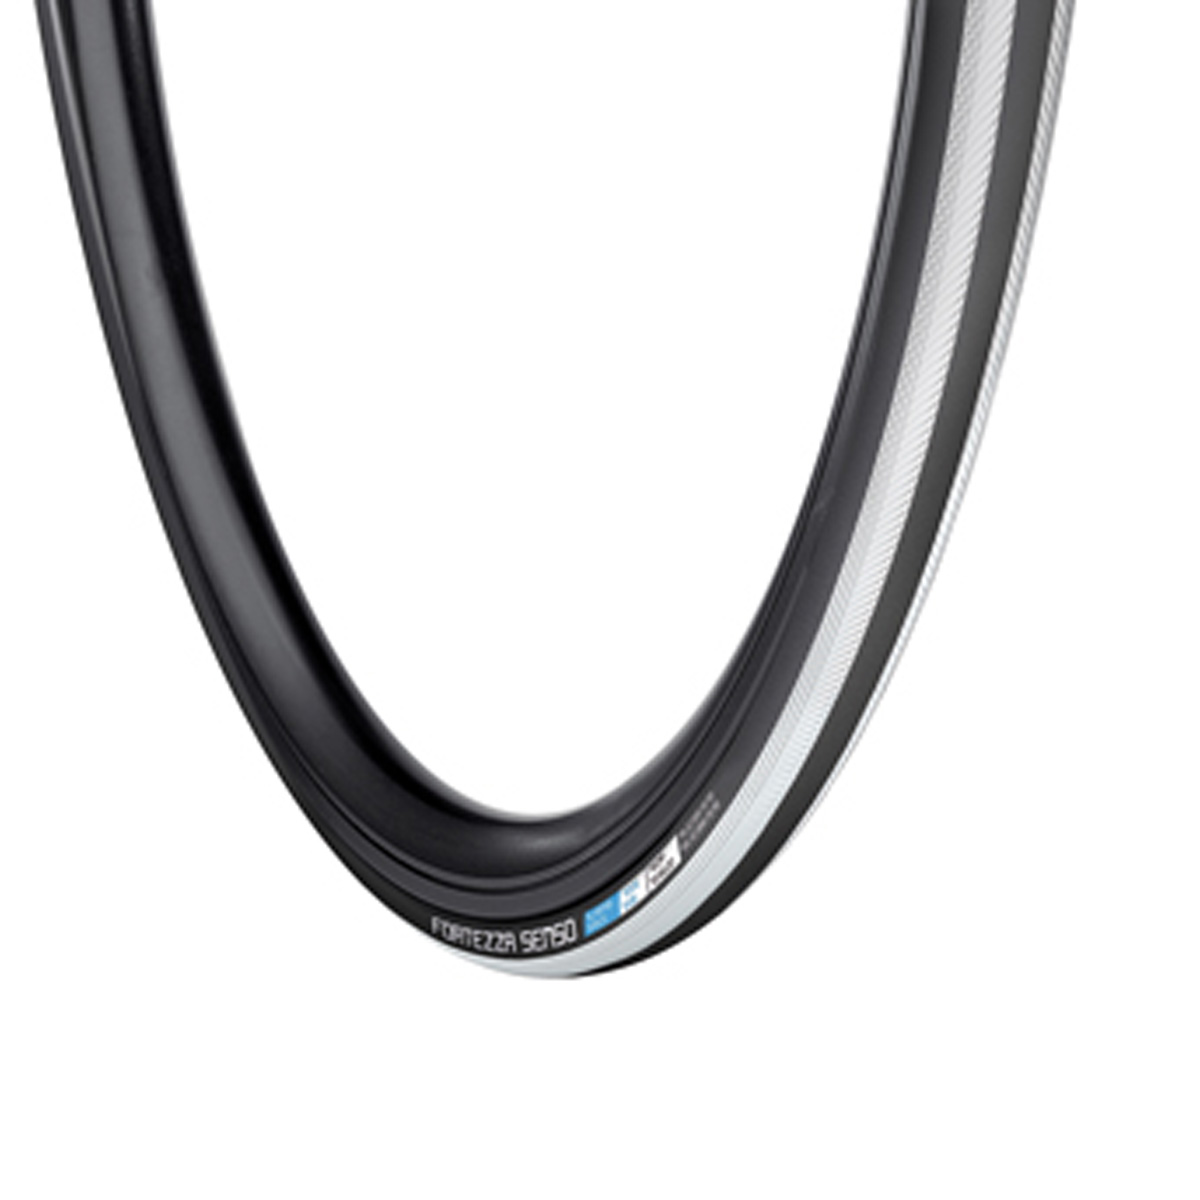 Vredestein Fortezza Senso All Weather Road Bicycle Tire